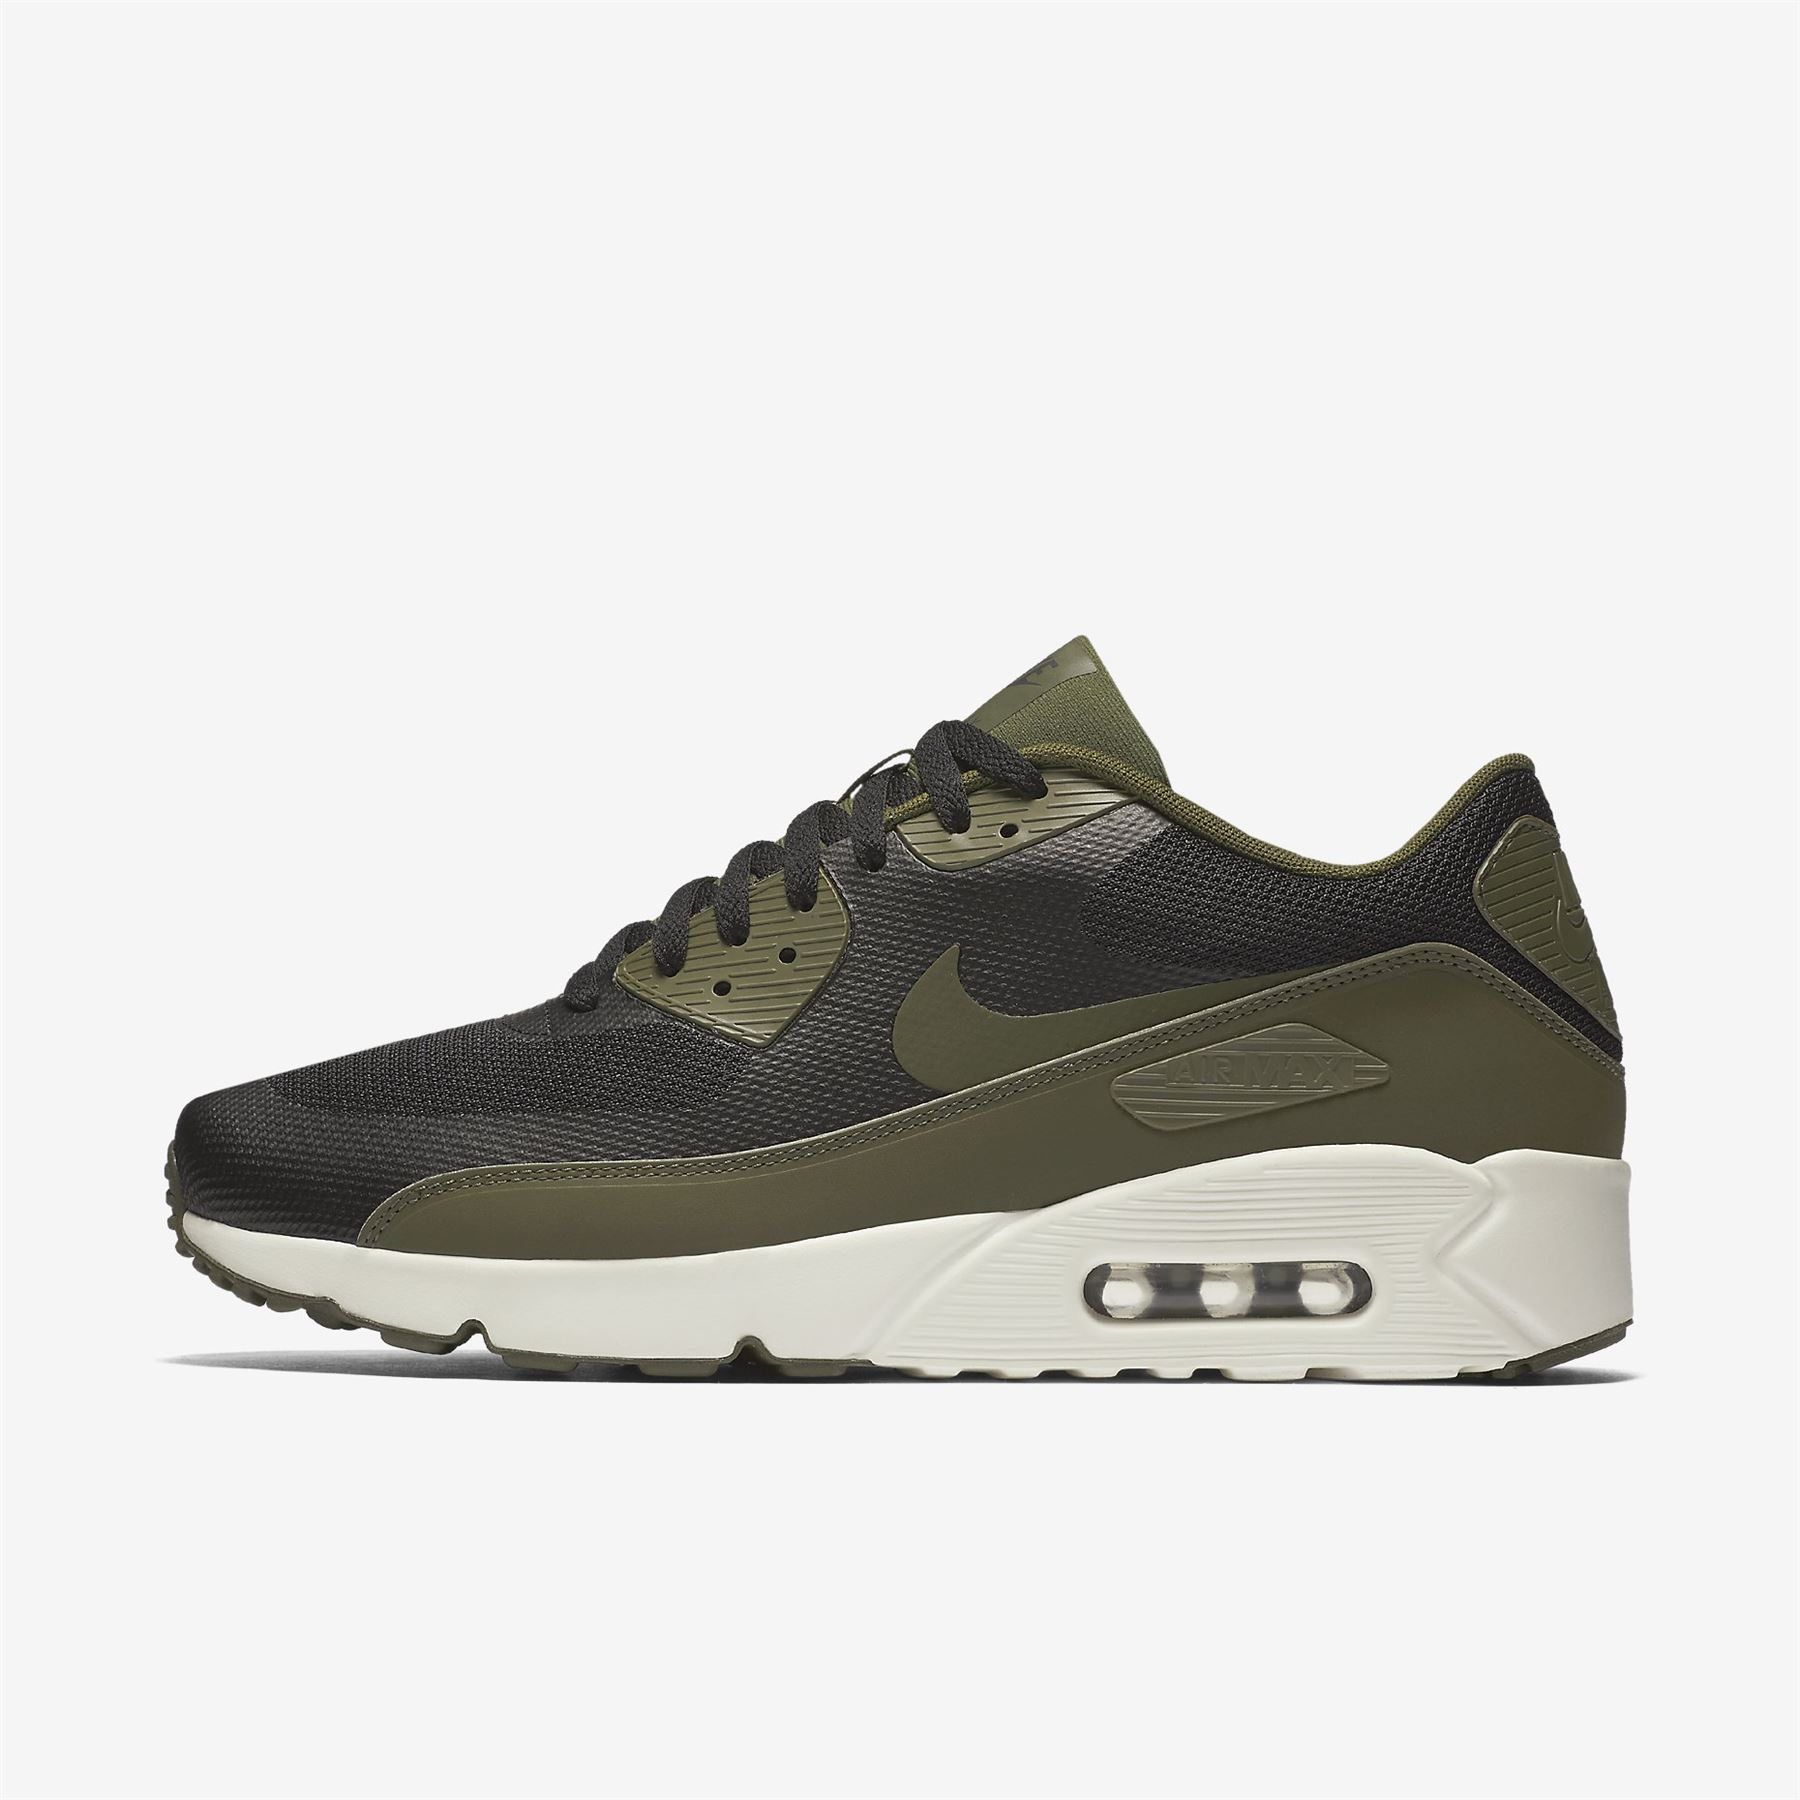 fd88fcb6cd73 Details about NIKE AIR MAX 90 ULTRA 2.0 ESSENTIAL 875695 004 MENS  BLACK-GREEN UK 6-11